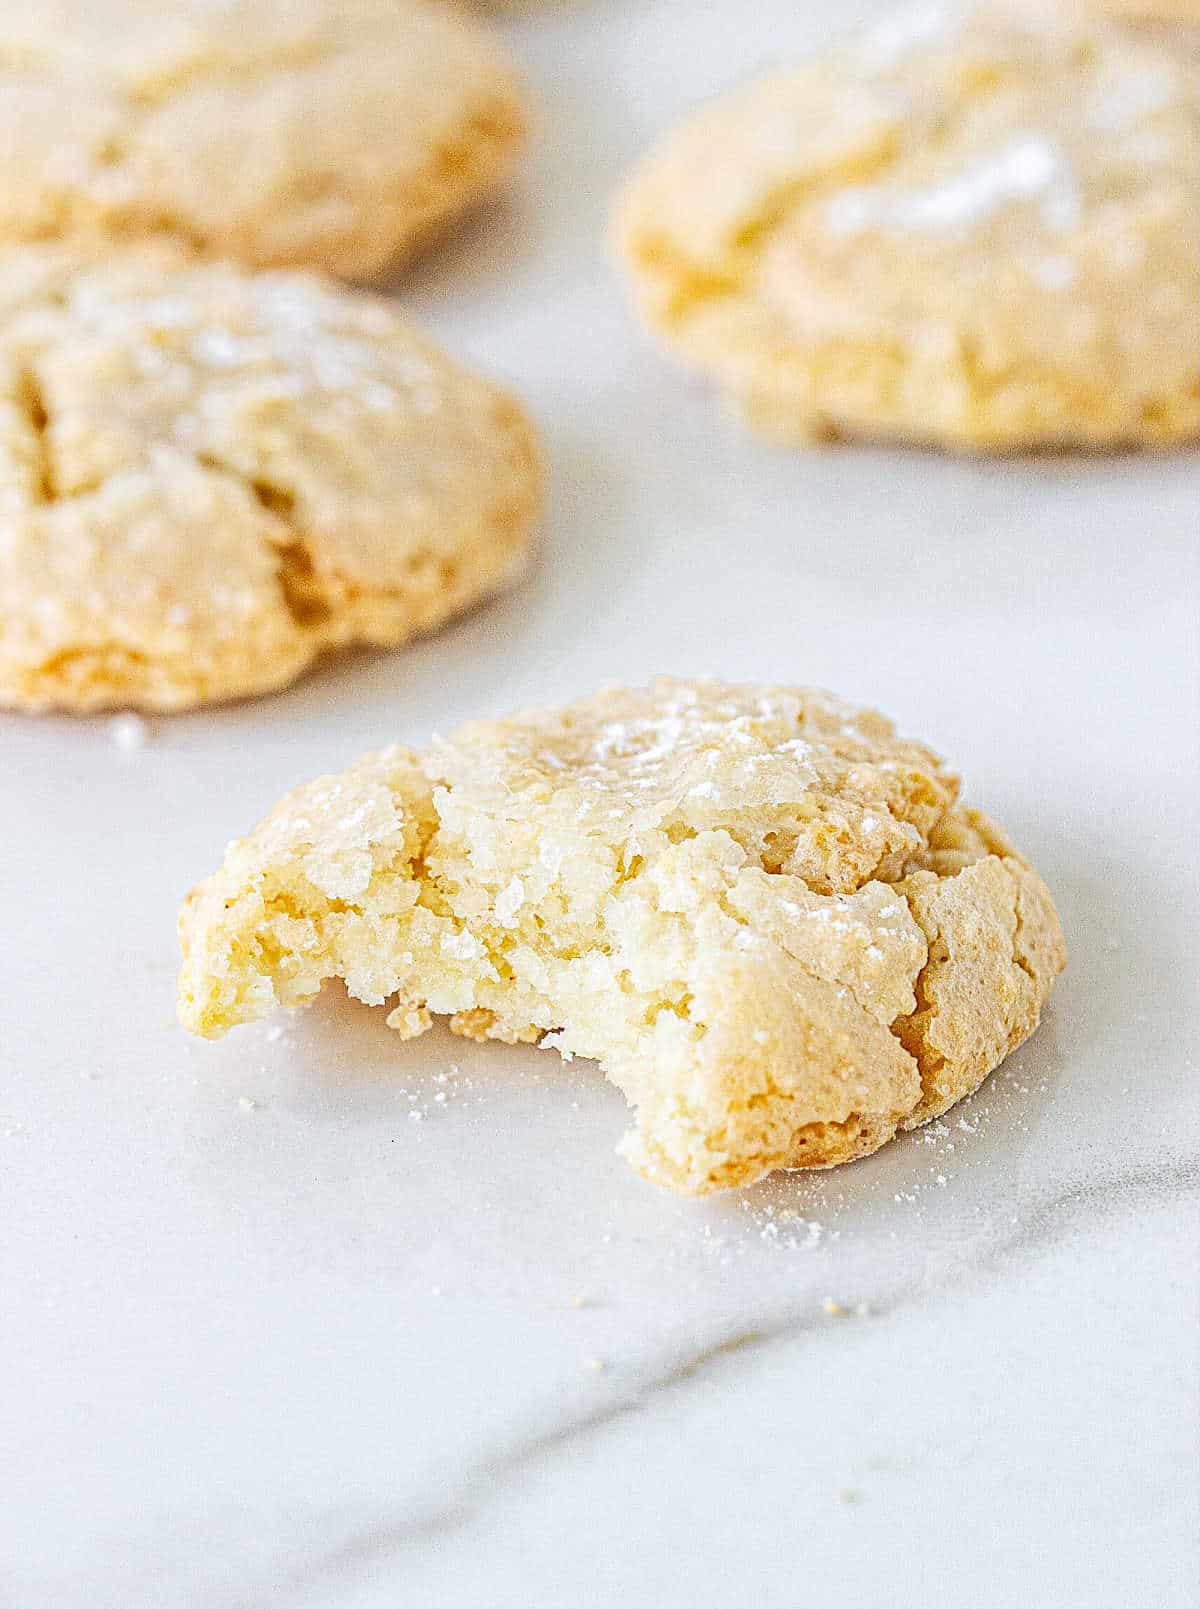 Bitten almond cookie and whole ones on white marble surface